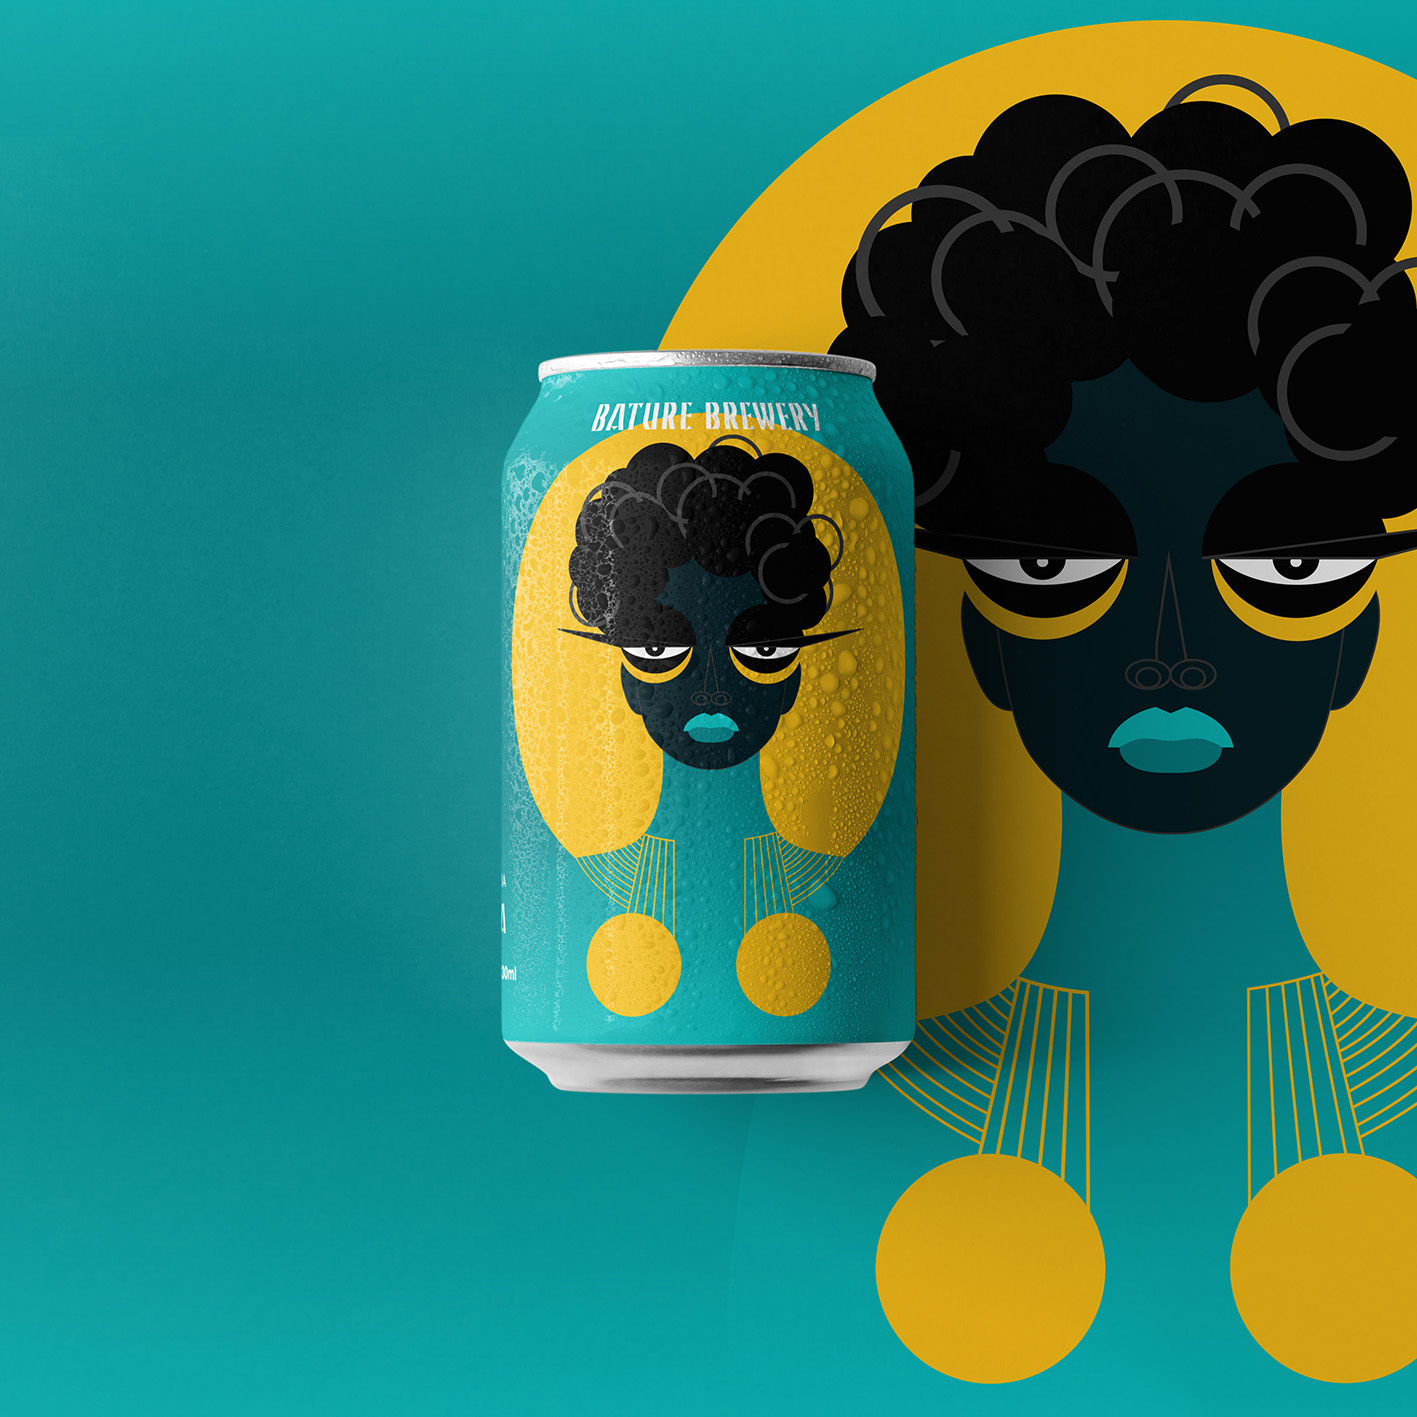 Lagos Brewery Bature Product Core Range Designed by Pim-Pam